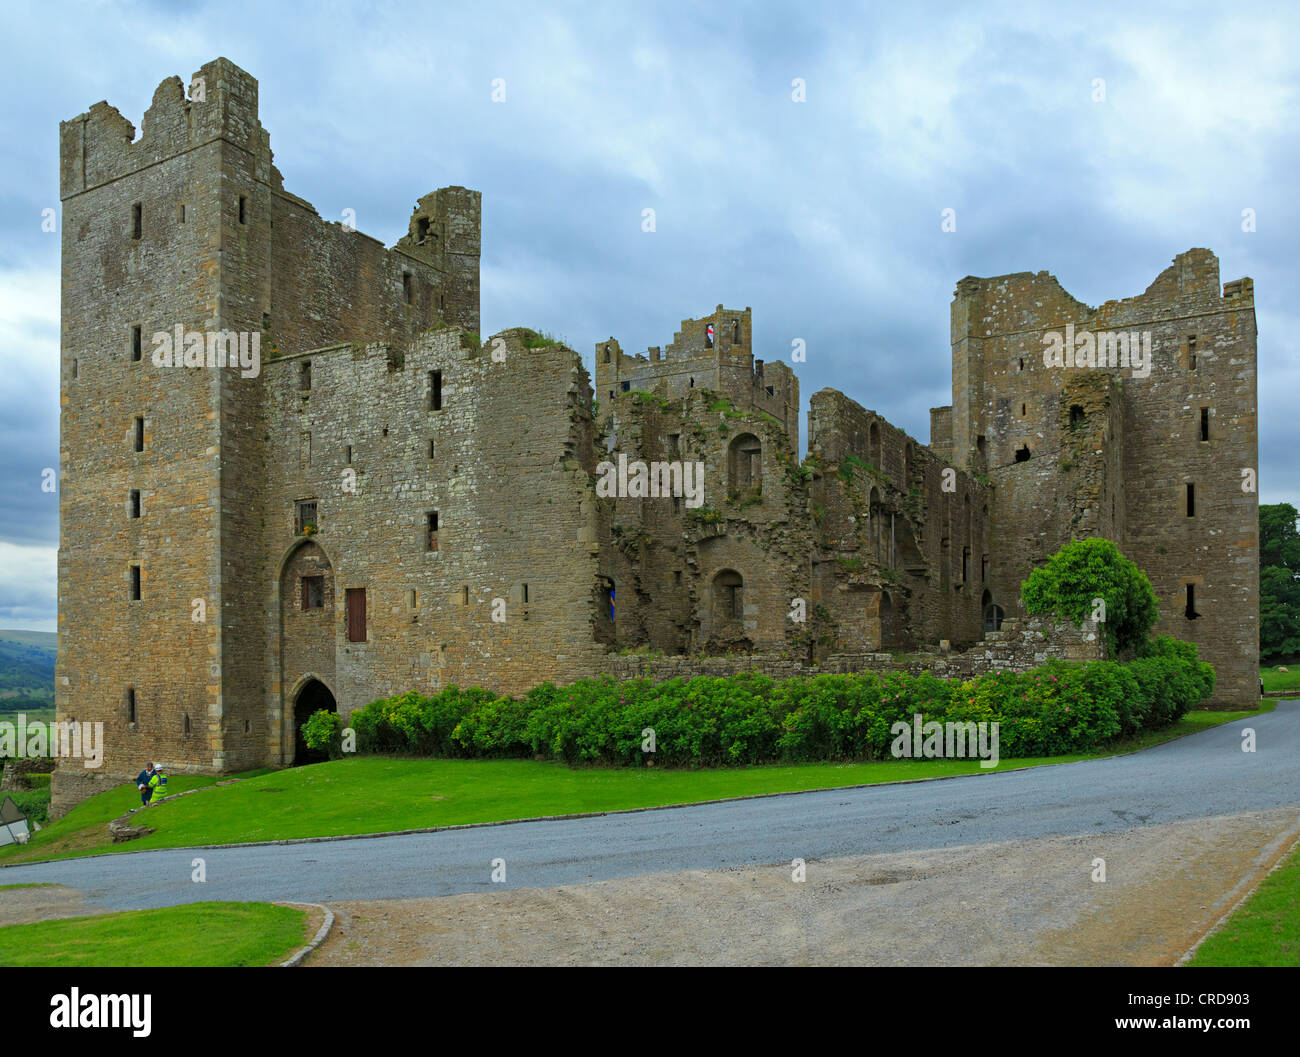 Bolton Castle, Wensleydale, Yorkshire. 14th century castle, still in the hands of the original family. - Stock Image